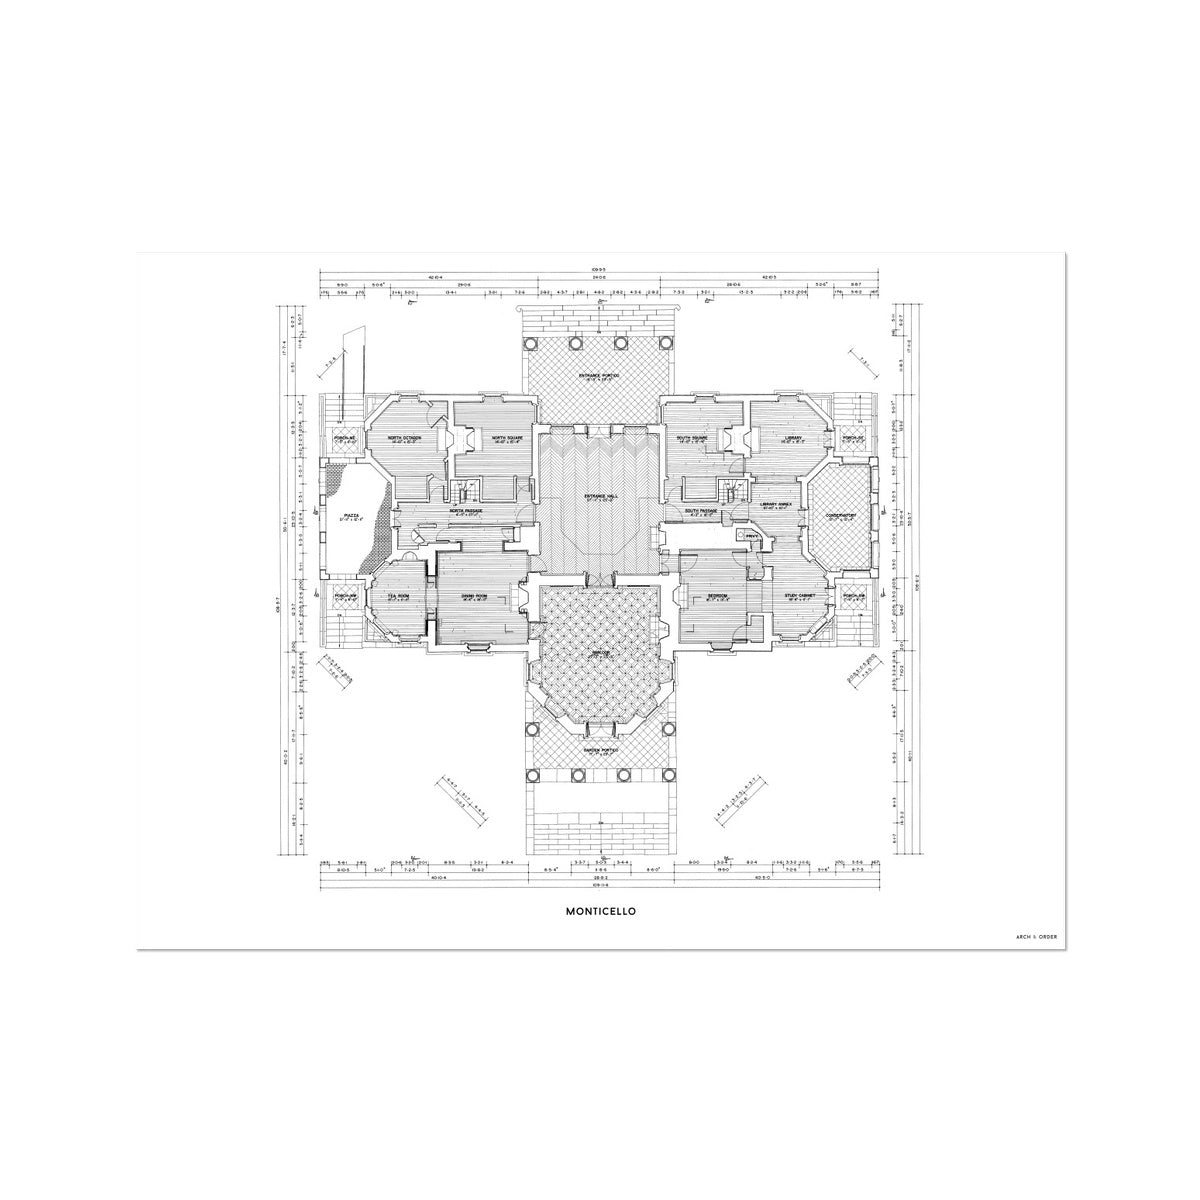 Monticello - First Floor Plan - White -  Etching Paper Print